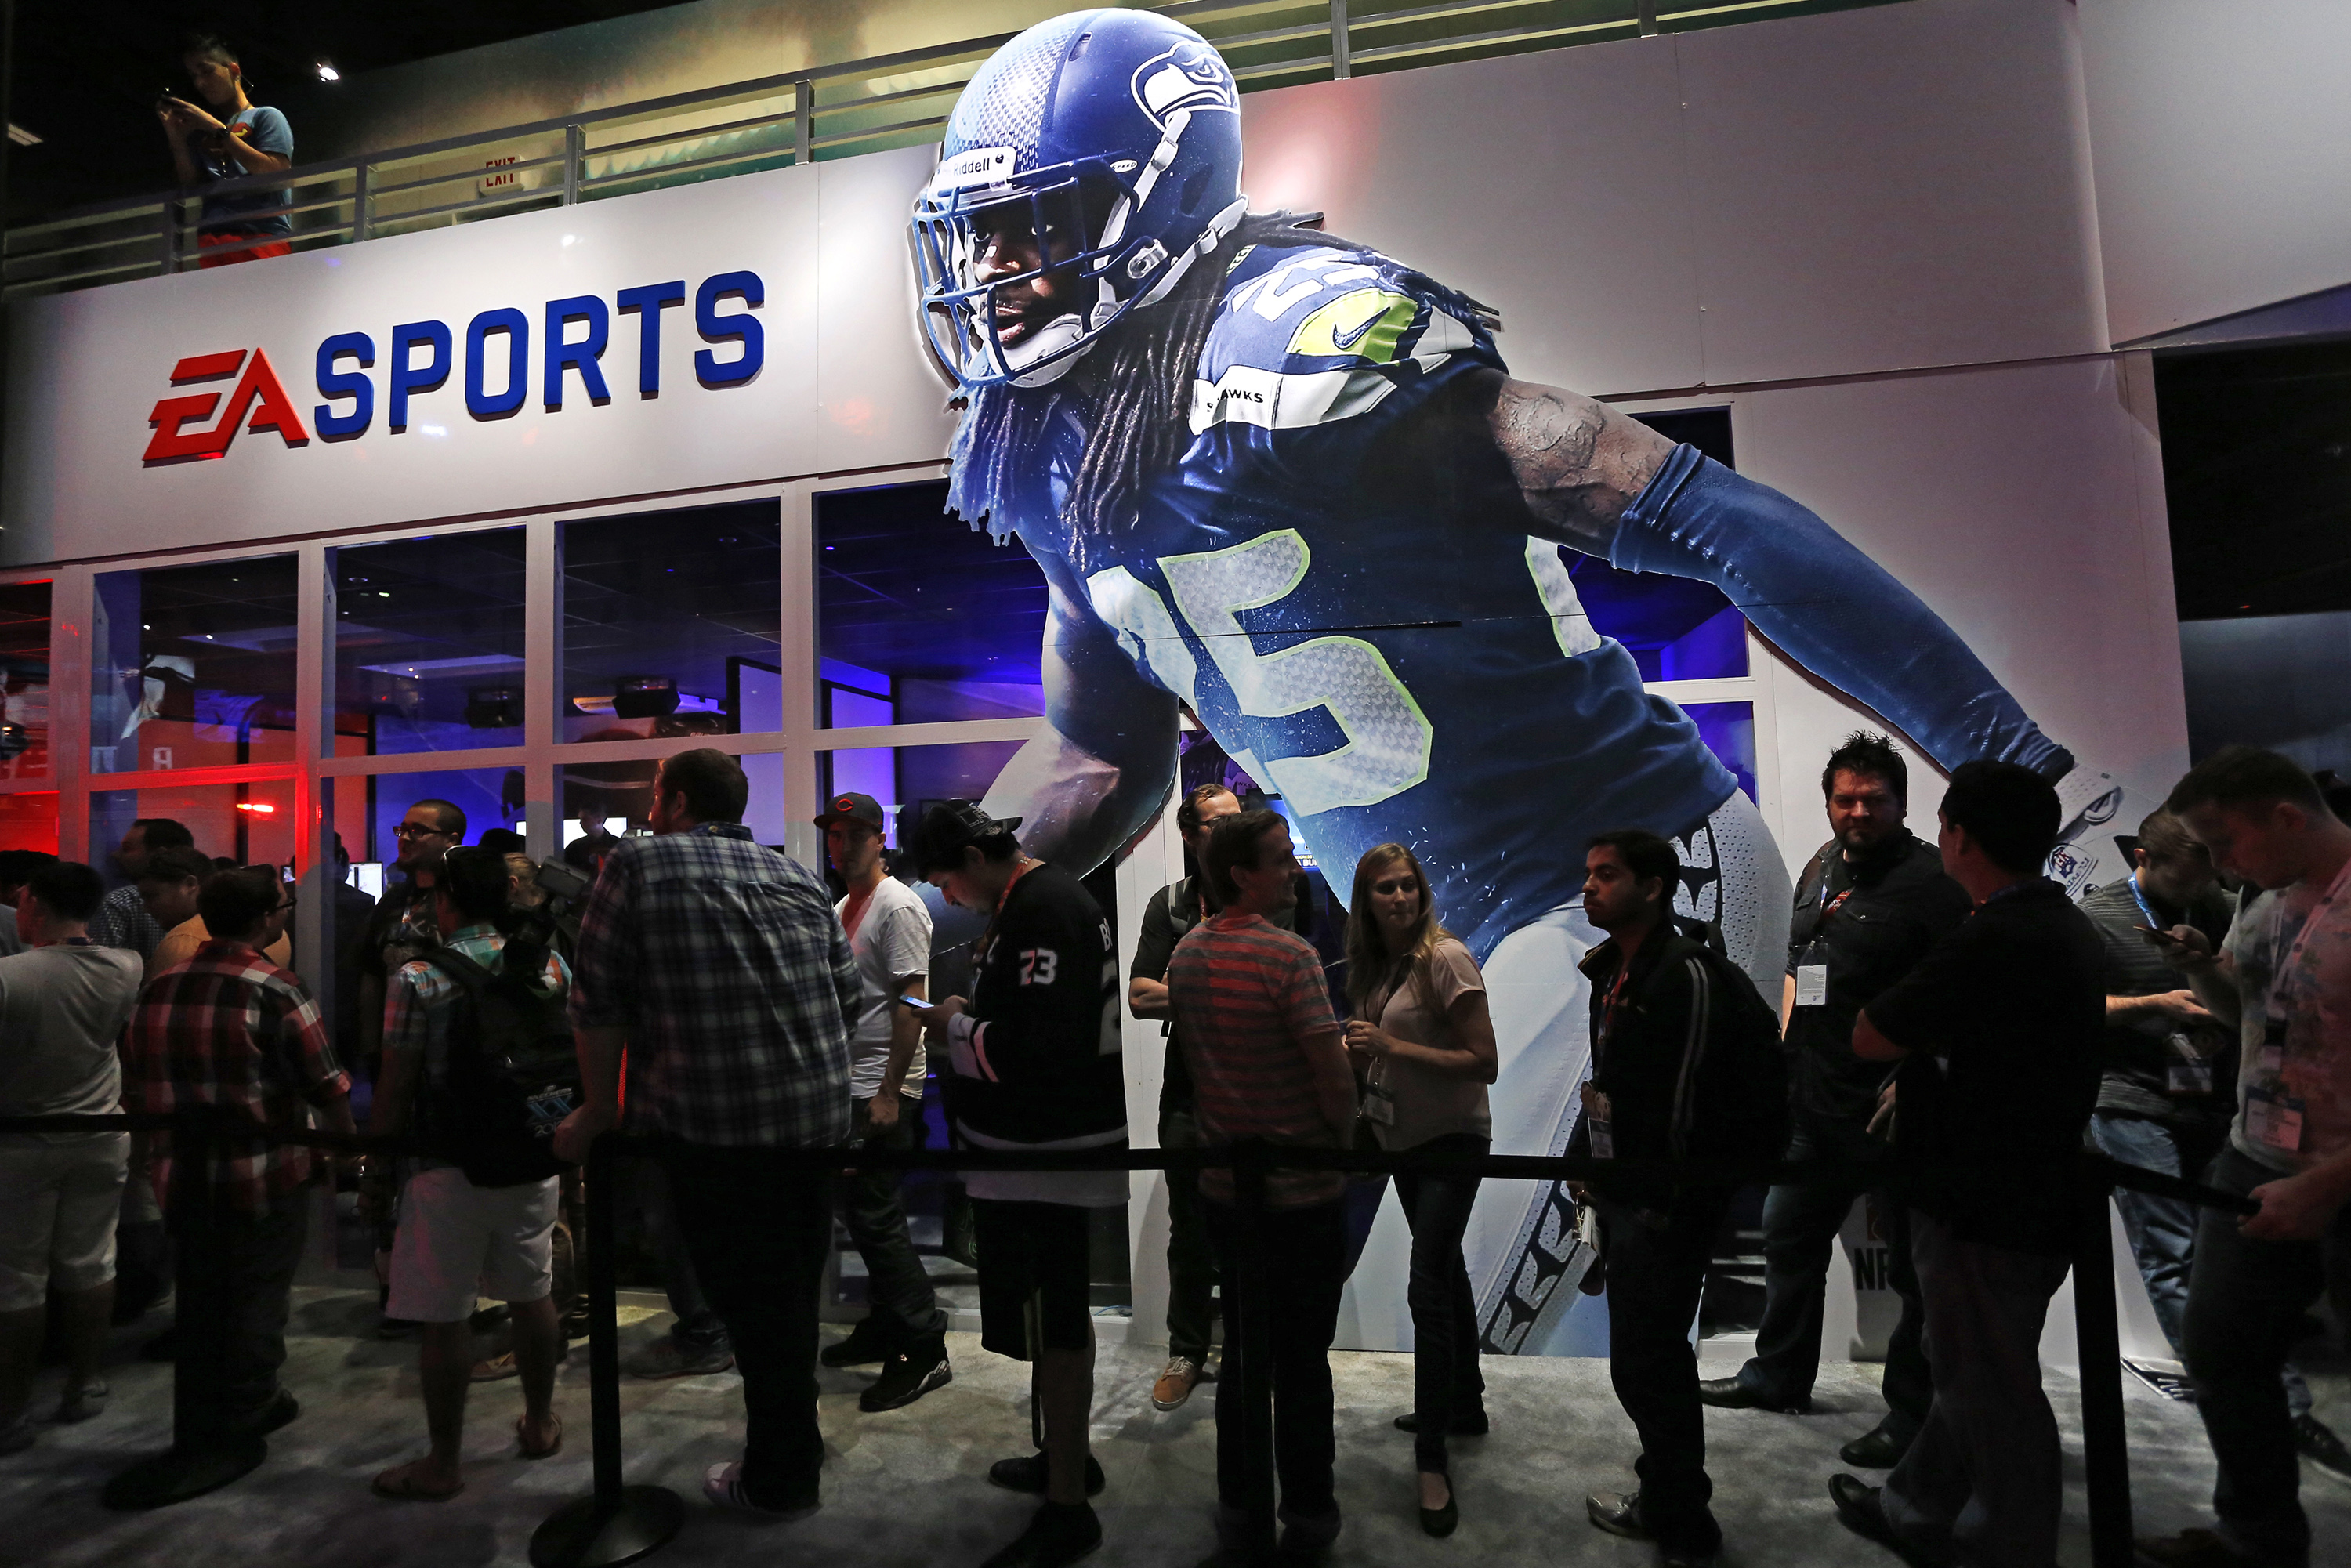 """People wait in-line under """"Madden NFL 15"""" billboard with an image of NFL player Sherman at the Electronic Arts booth during the 2014 Electronic Entertainment Expo, known as E3, in Los Angeles"""